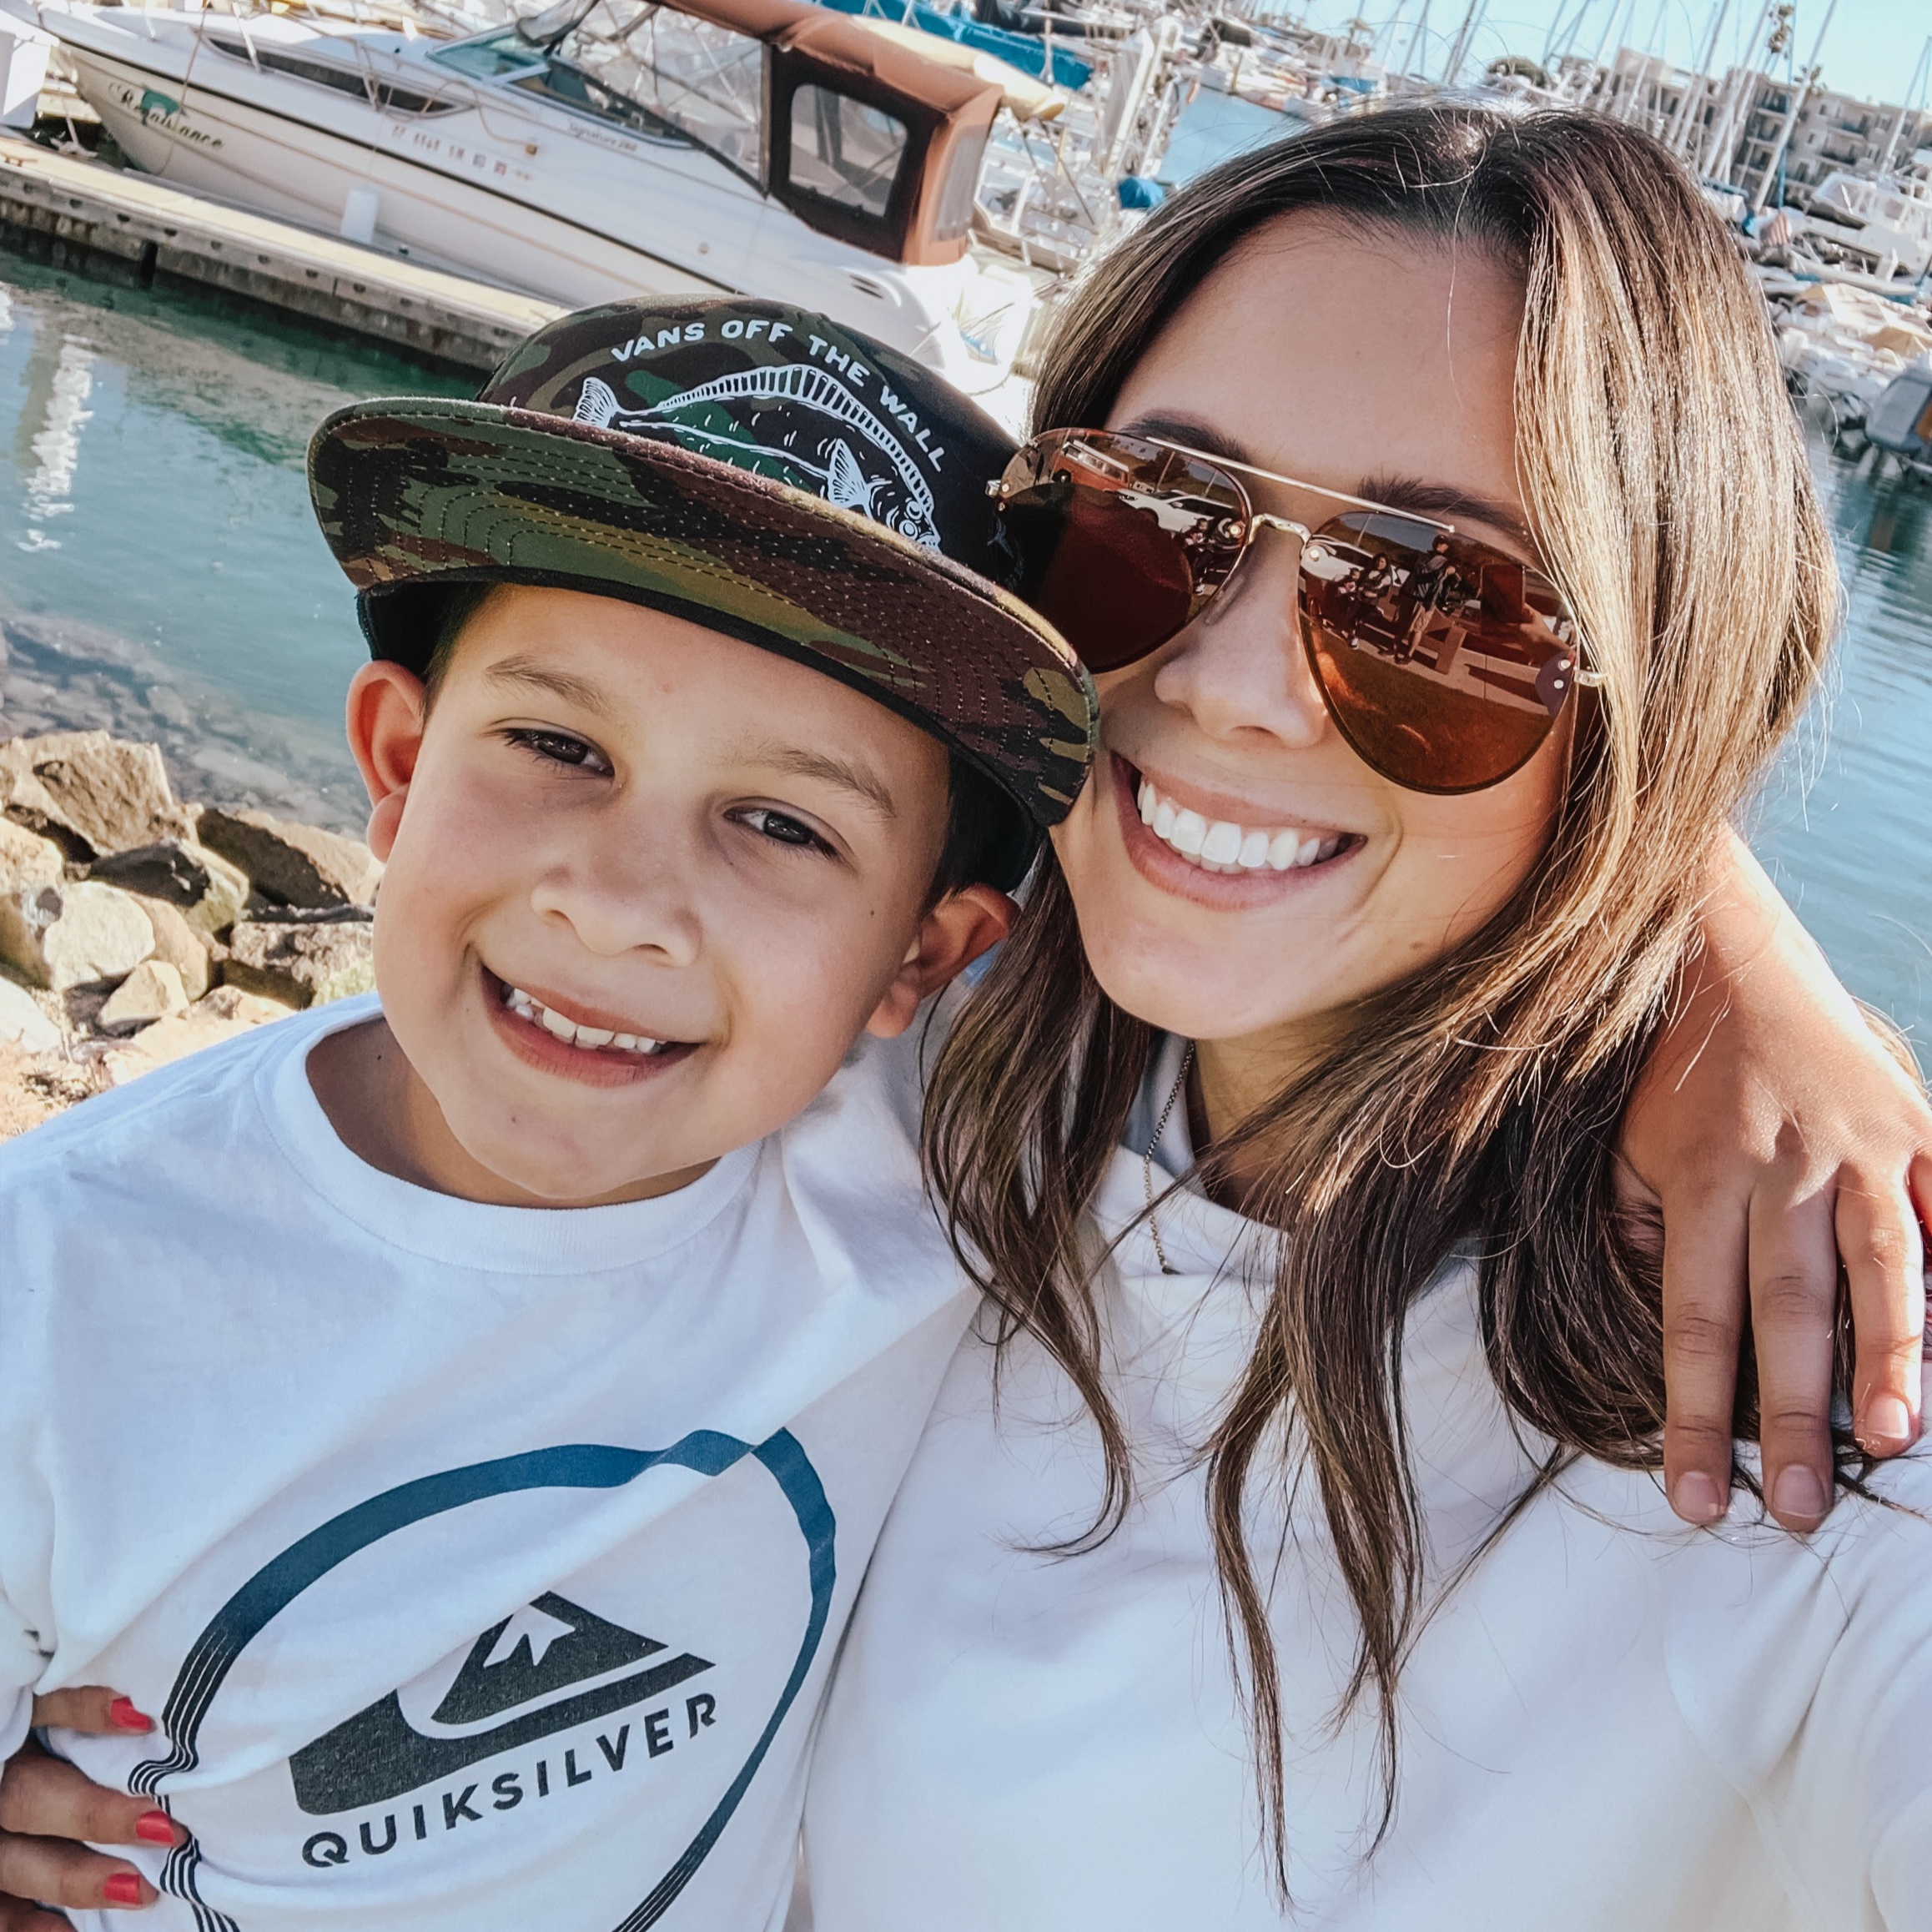 Ashley Clark Blog: Why I decided to open up on social media